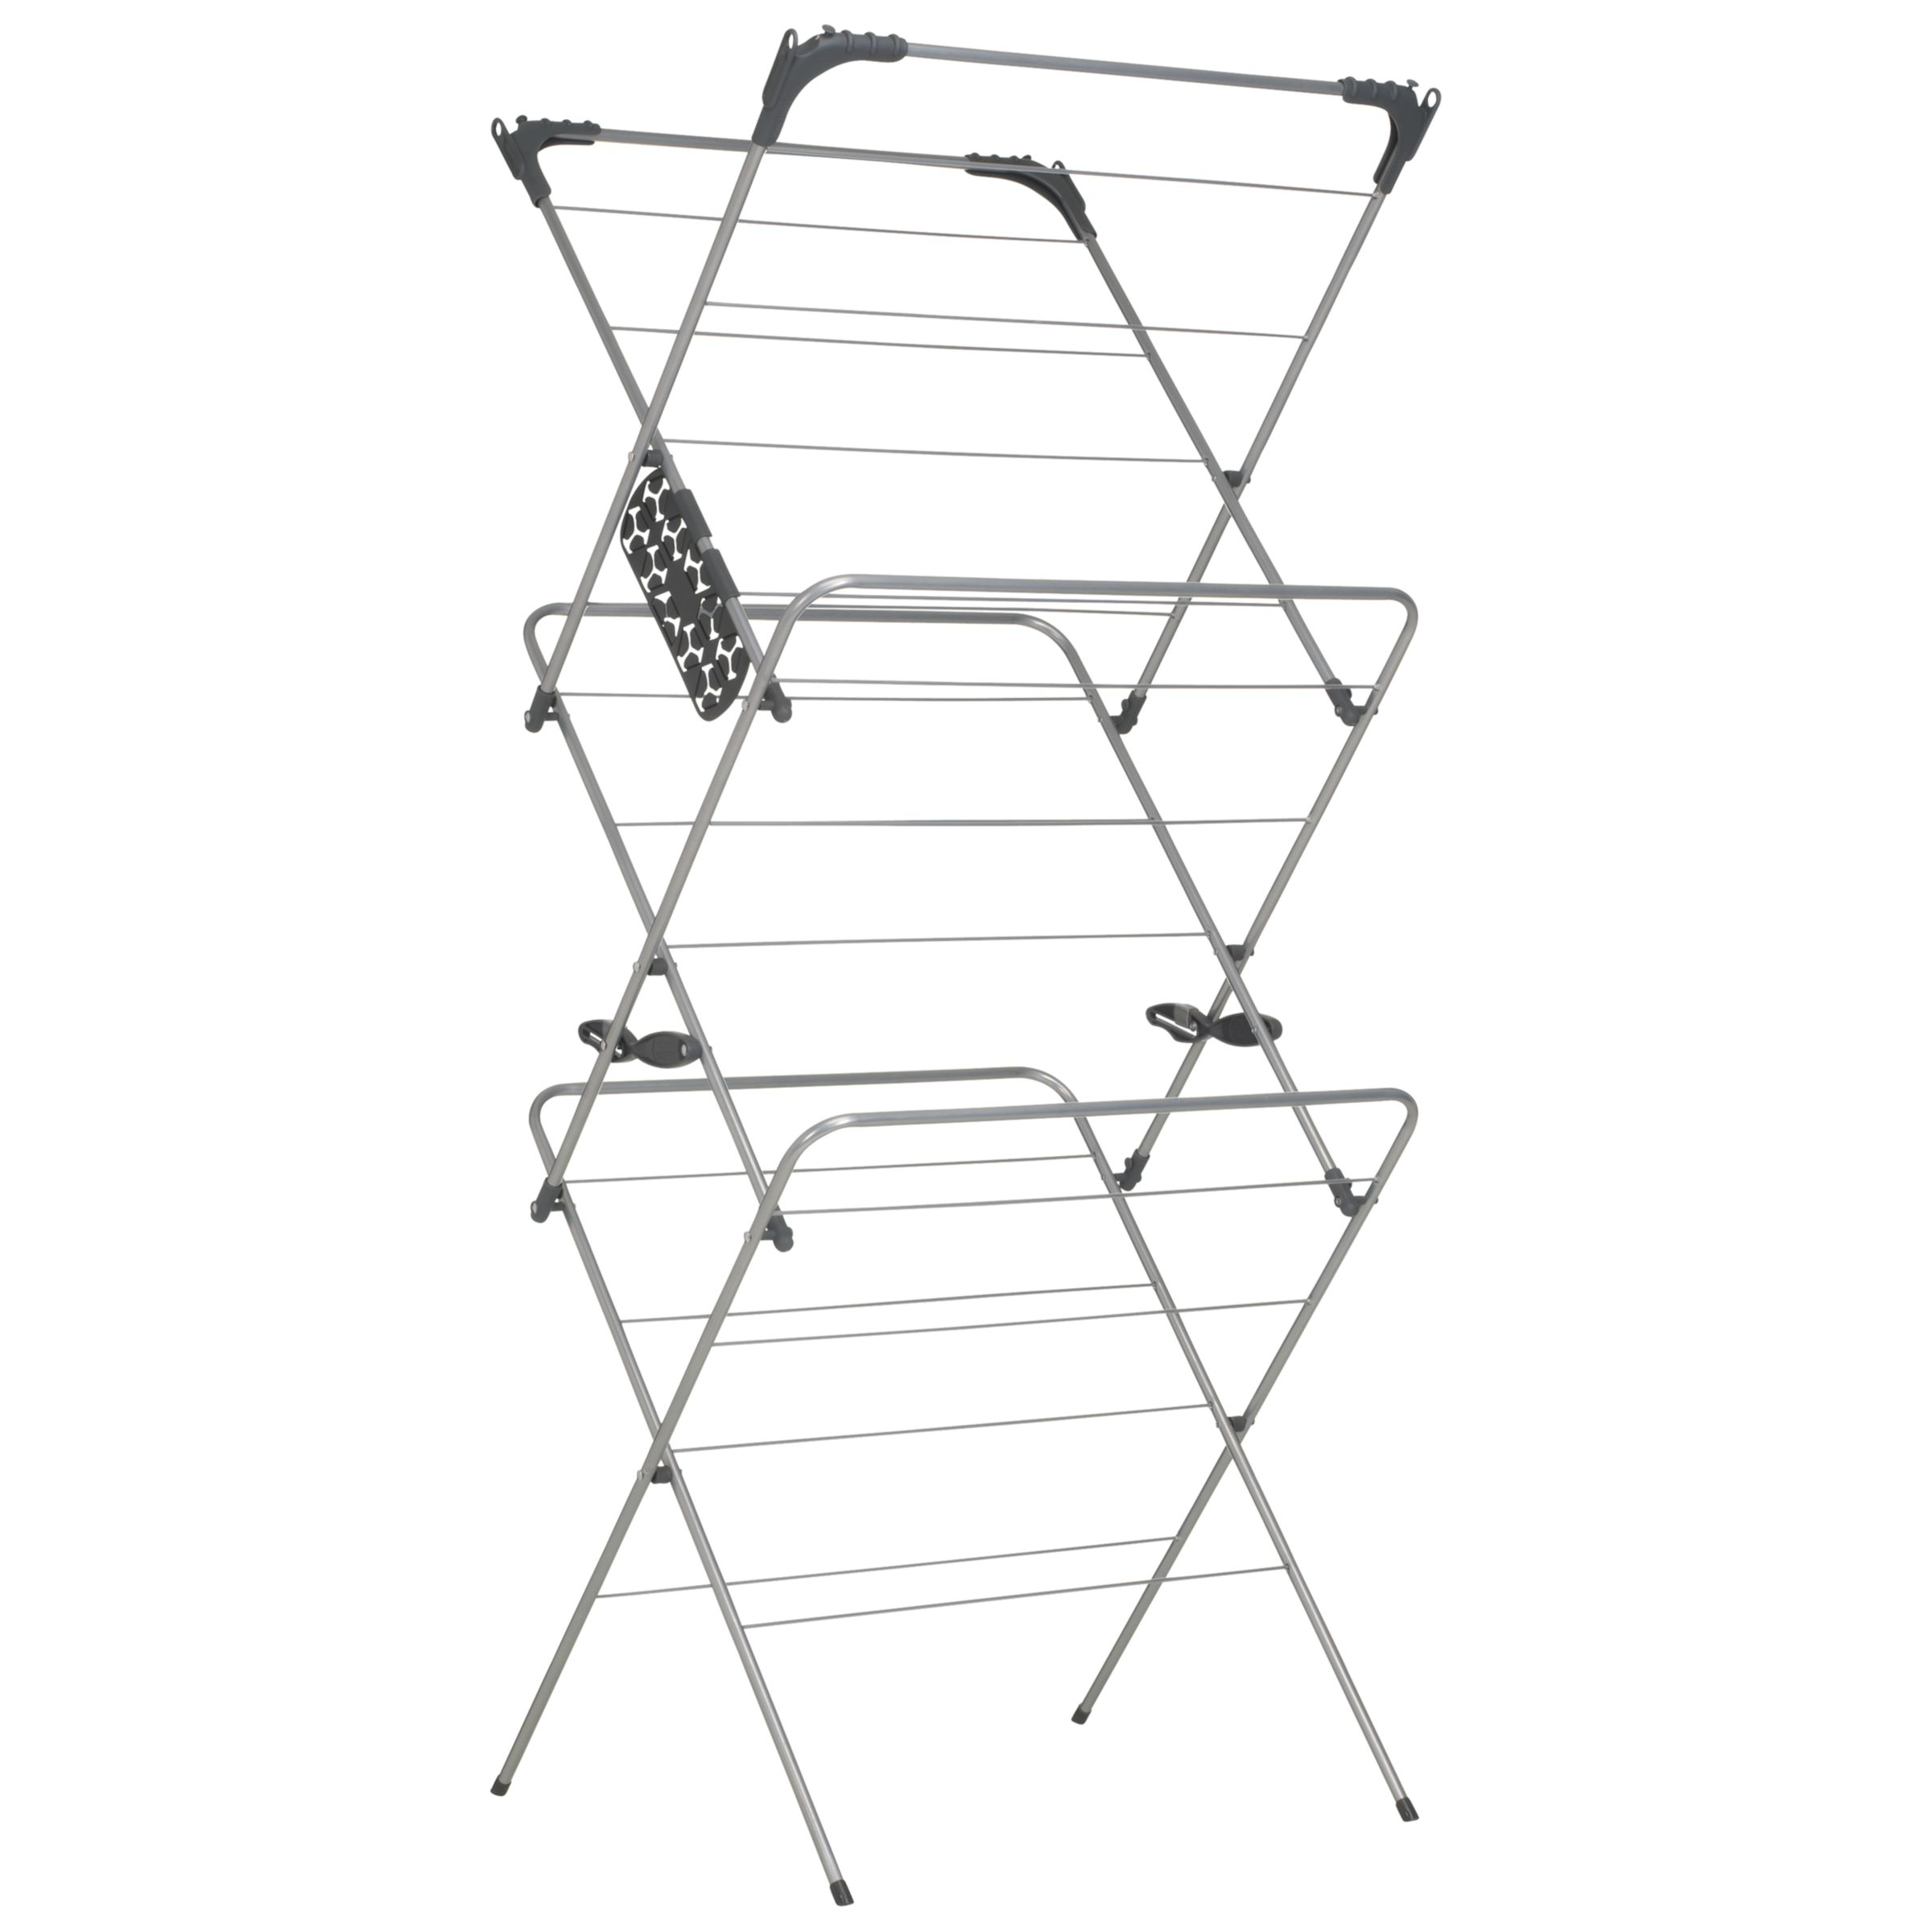 buy cheap 3 tier airer compare products prices for best. Black Bedroom Furniture Sets. Home Design Ideas